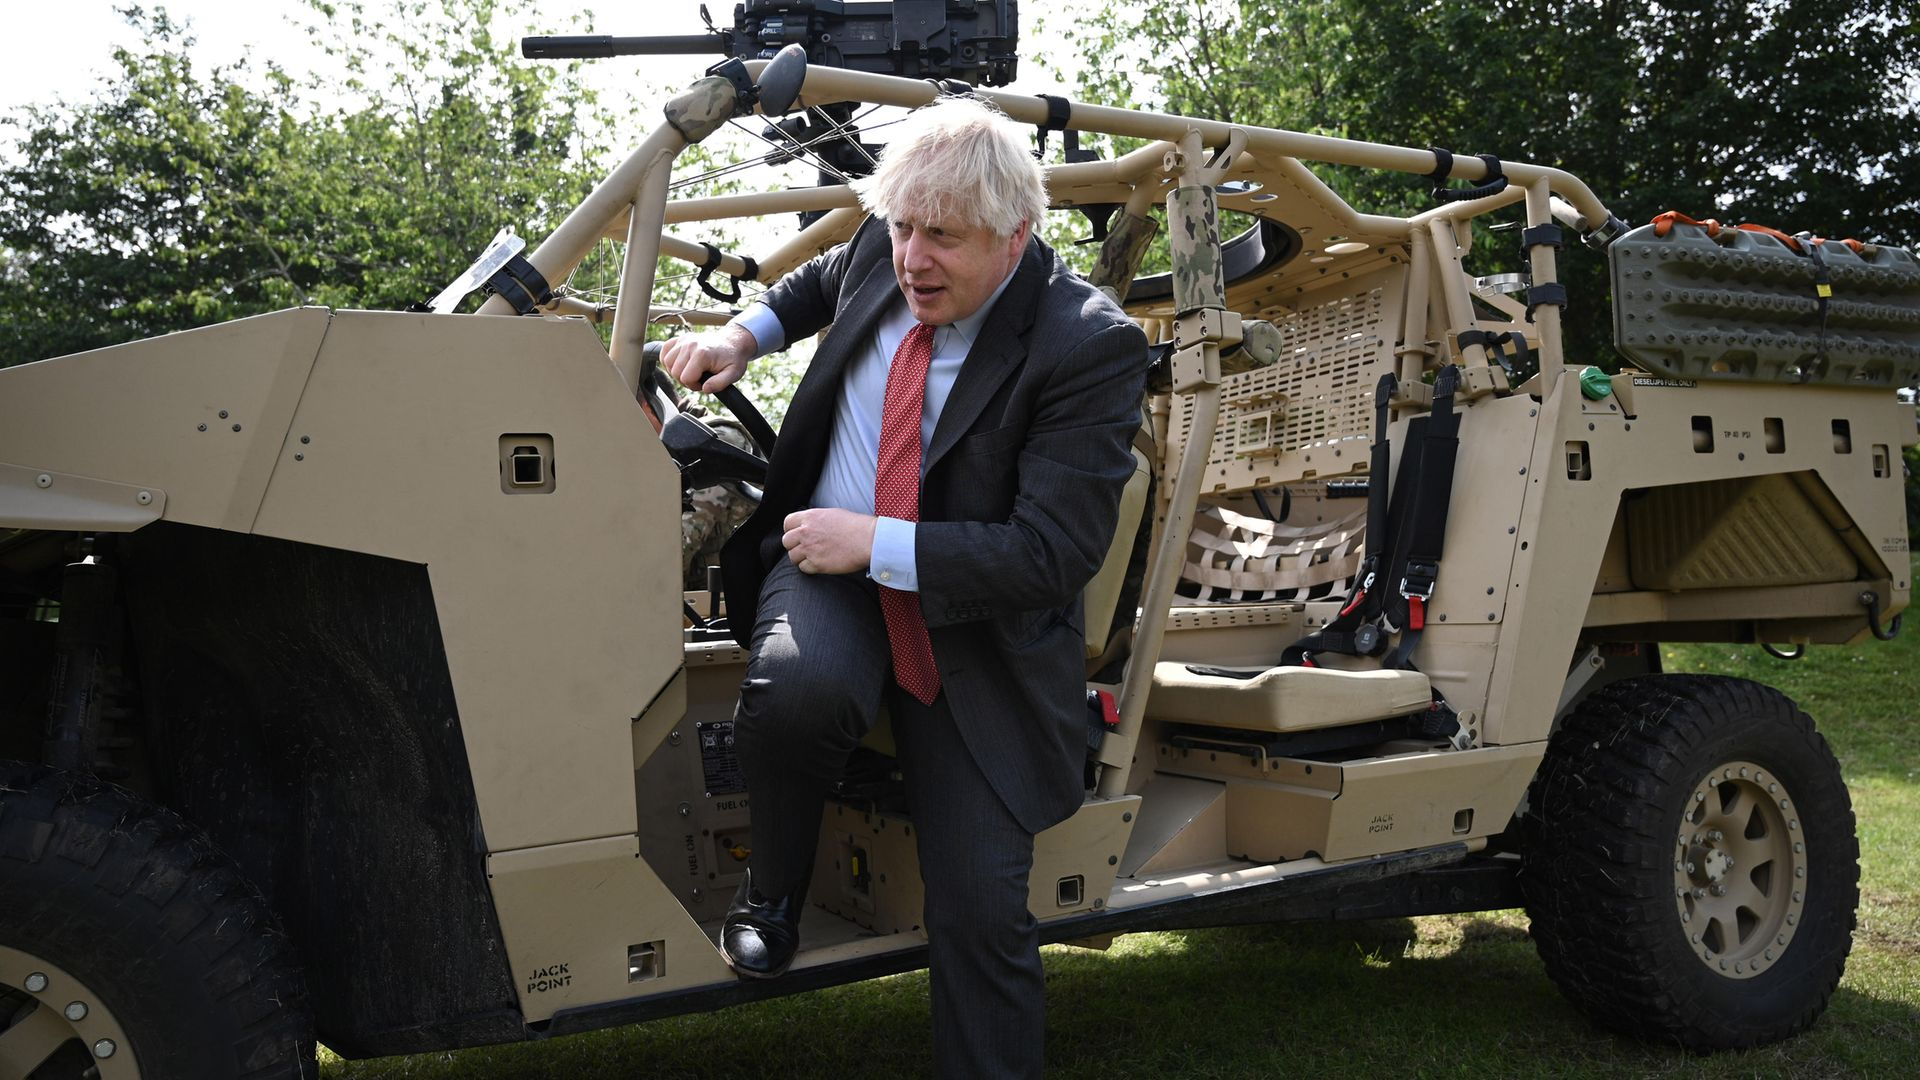 Boris Johnson steps down from an armoured vehicle during a trip to Aldershot garrison on June 24, 2021 - Credit: Getty Images